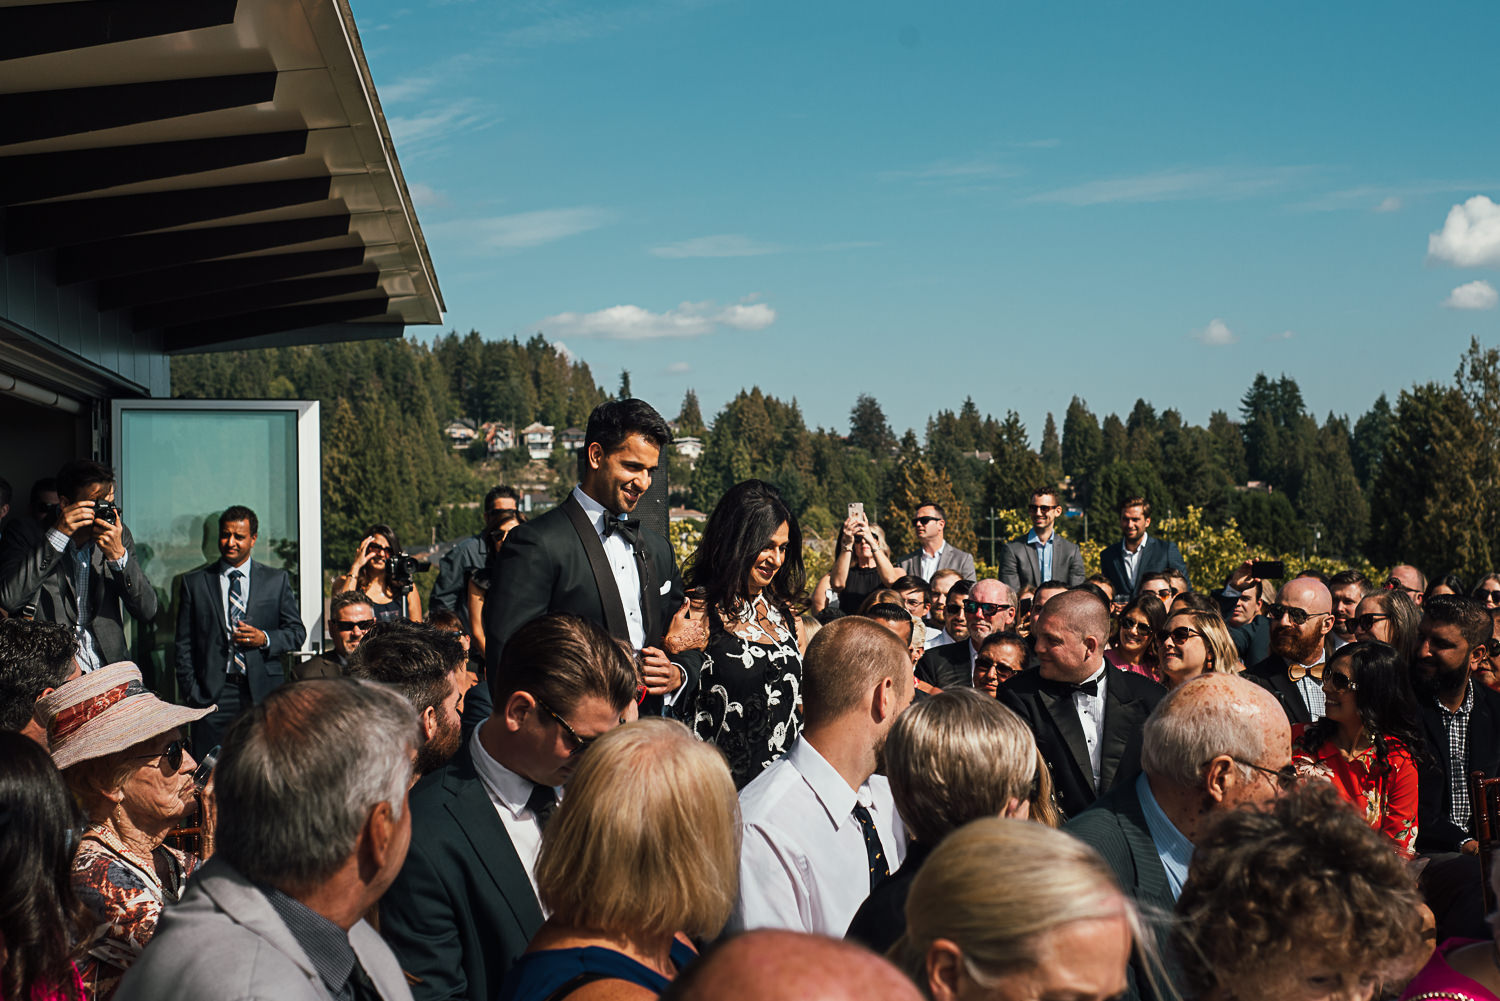 The View on Lonsdale wedding Melissa and Ajit -070.jpg